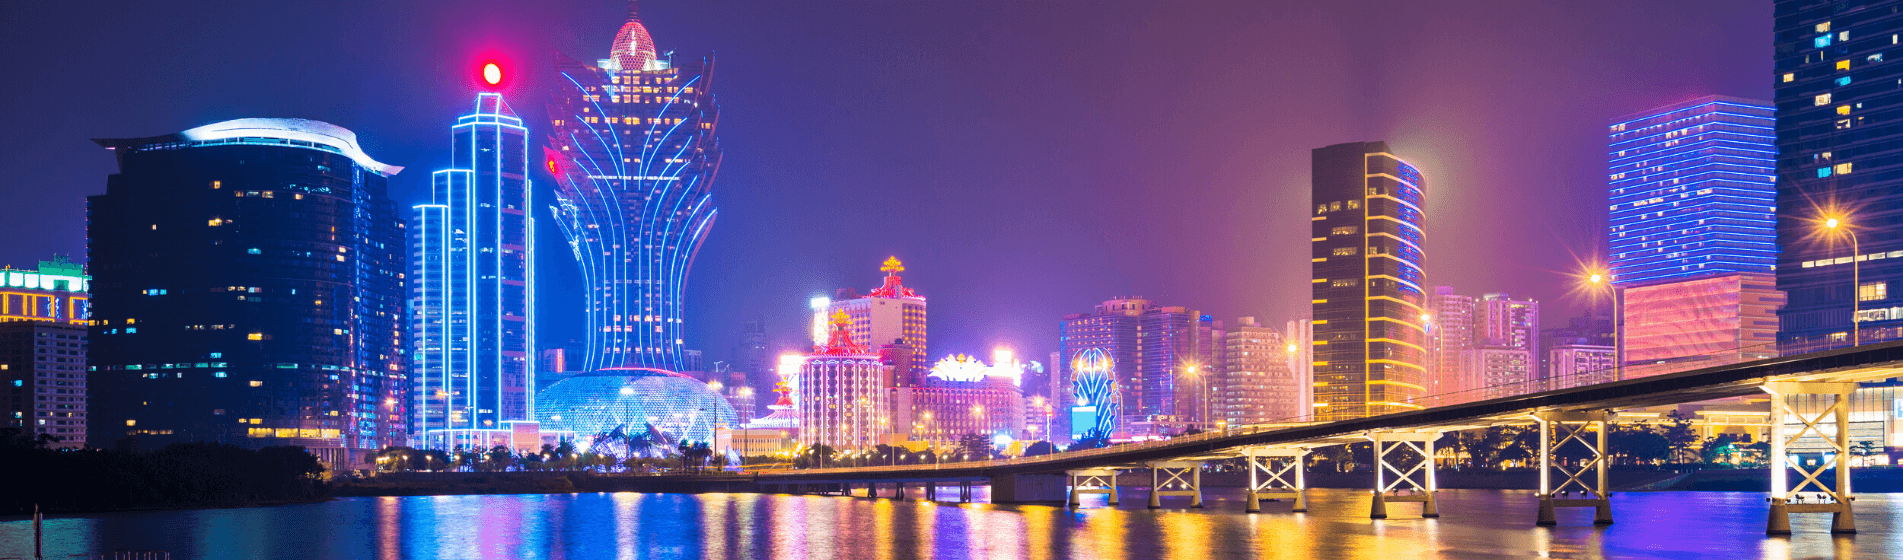 Are Macau casino chips better than fiat currency?